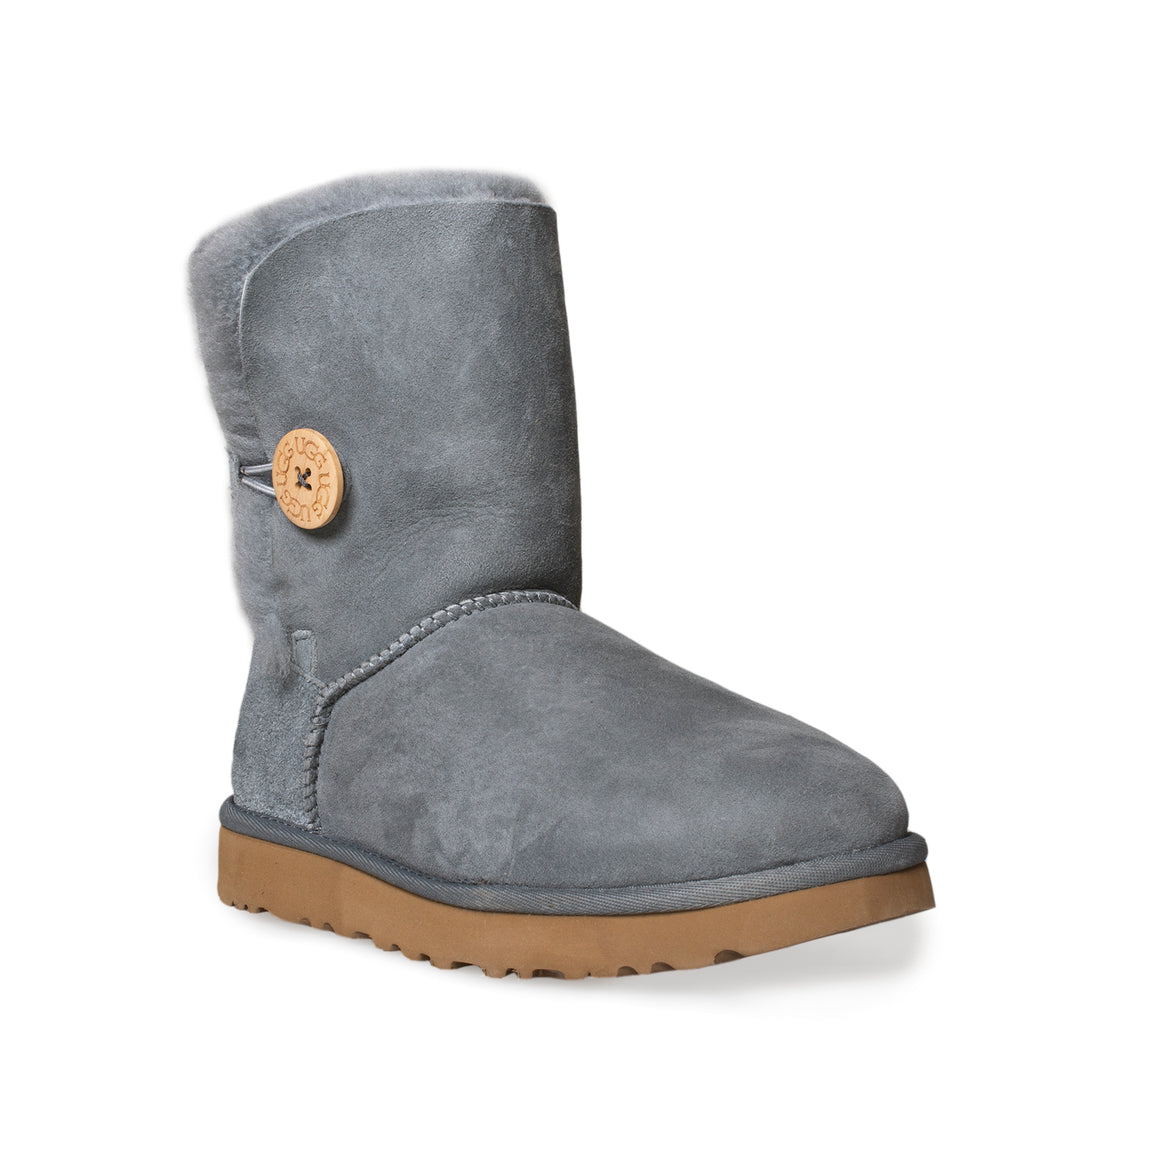 UGG Bailey Button II Geyser Boots - Women's